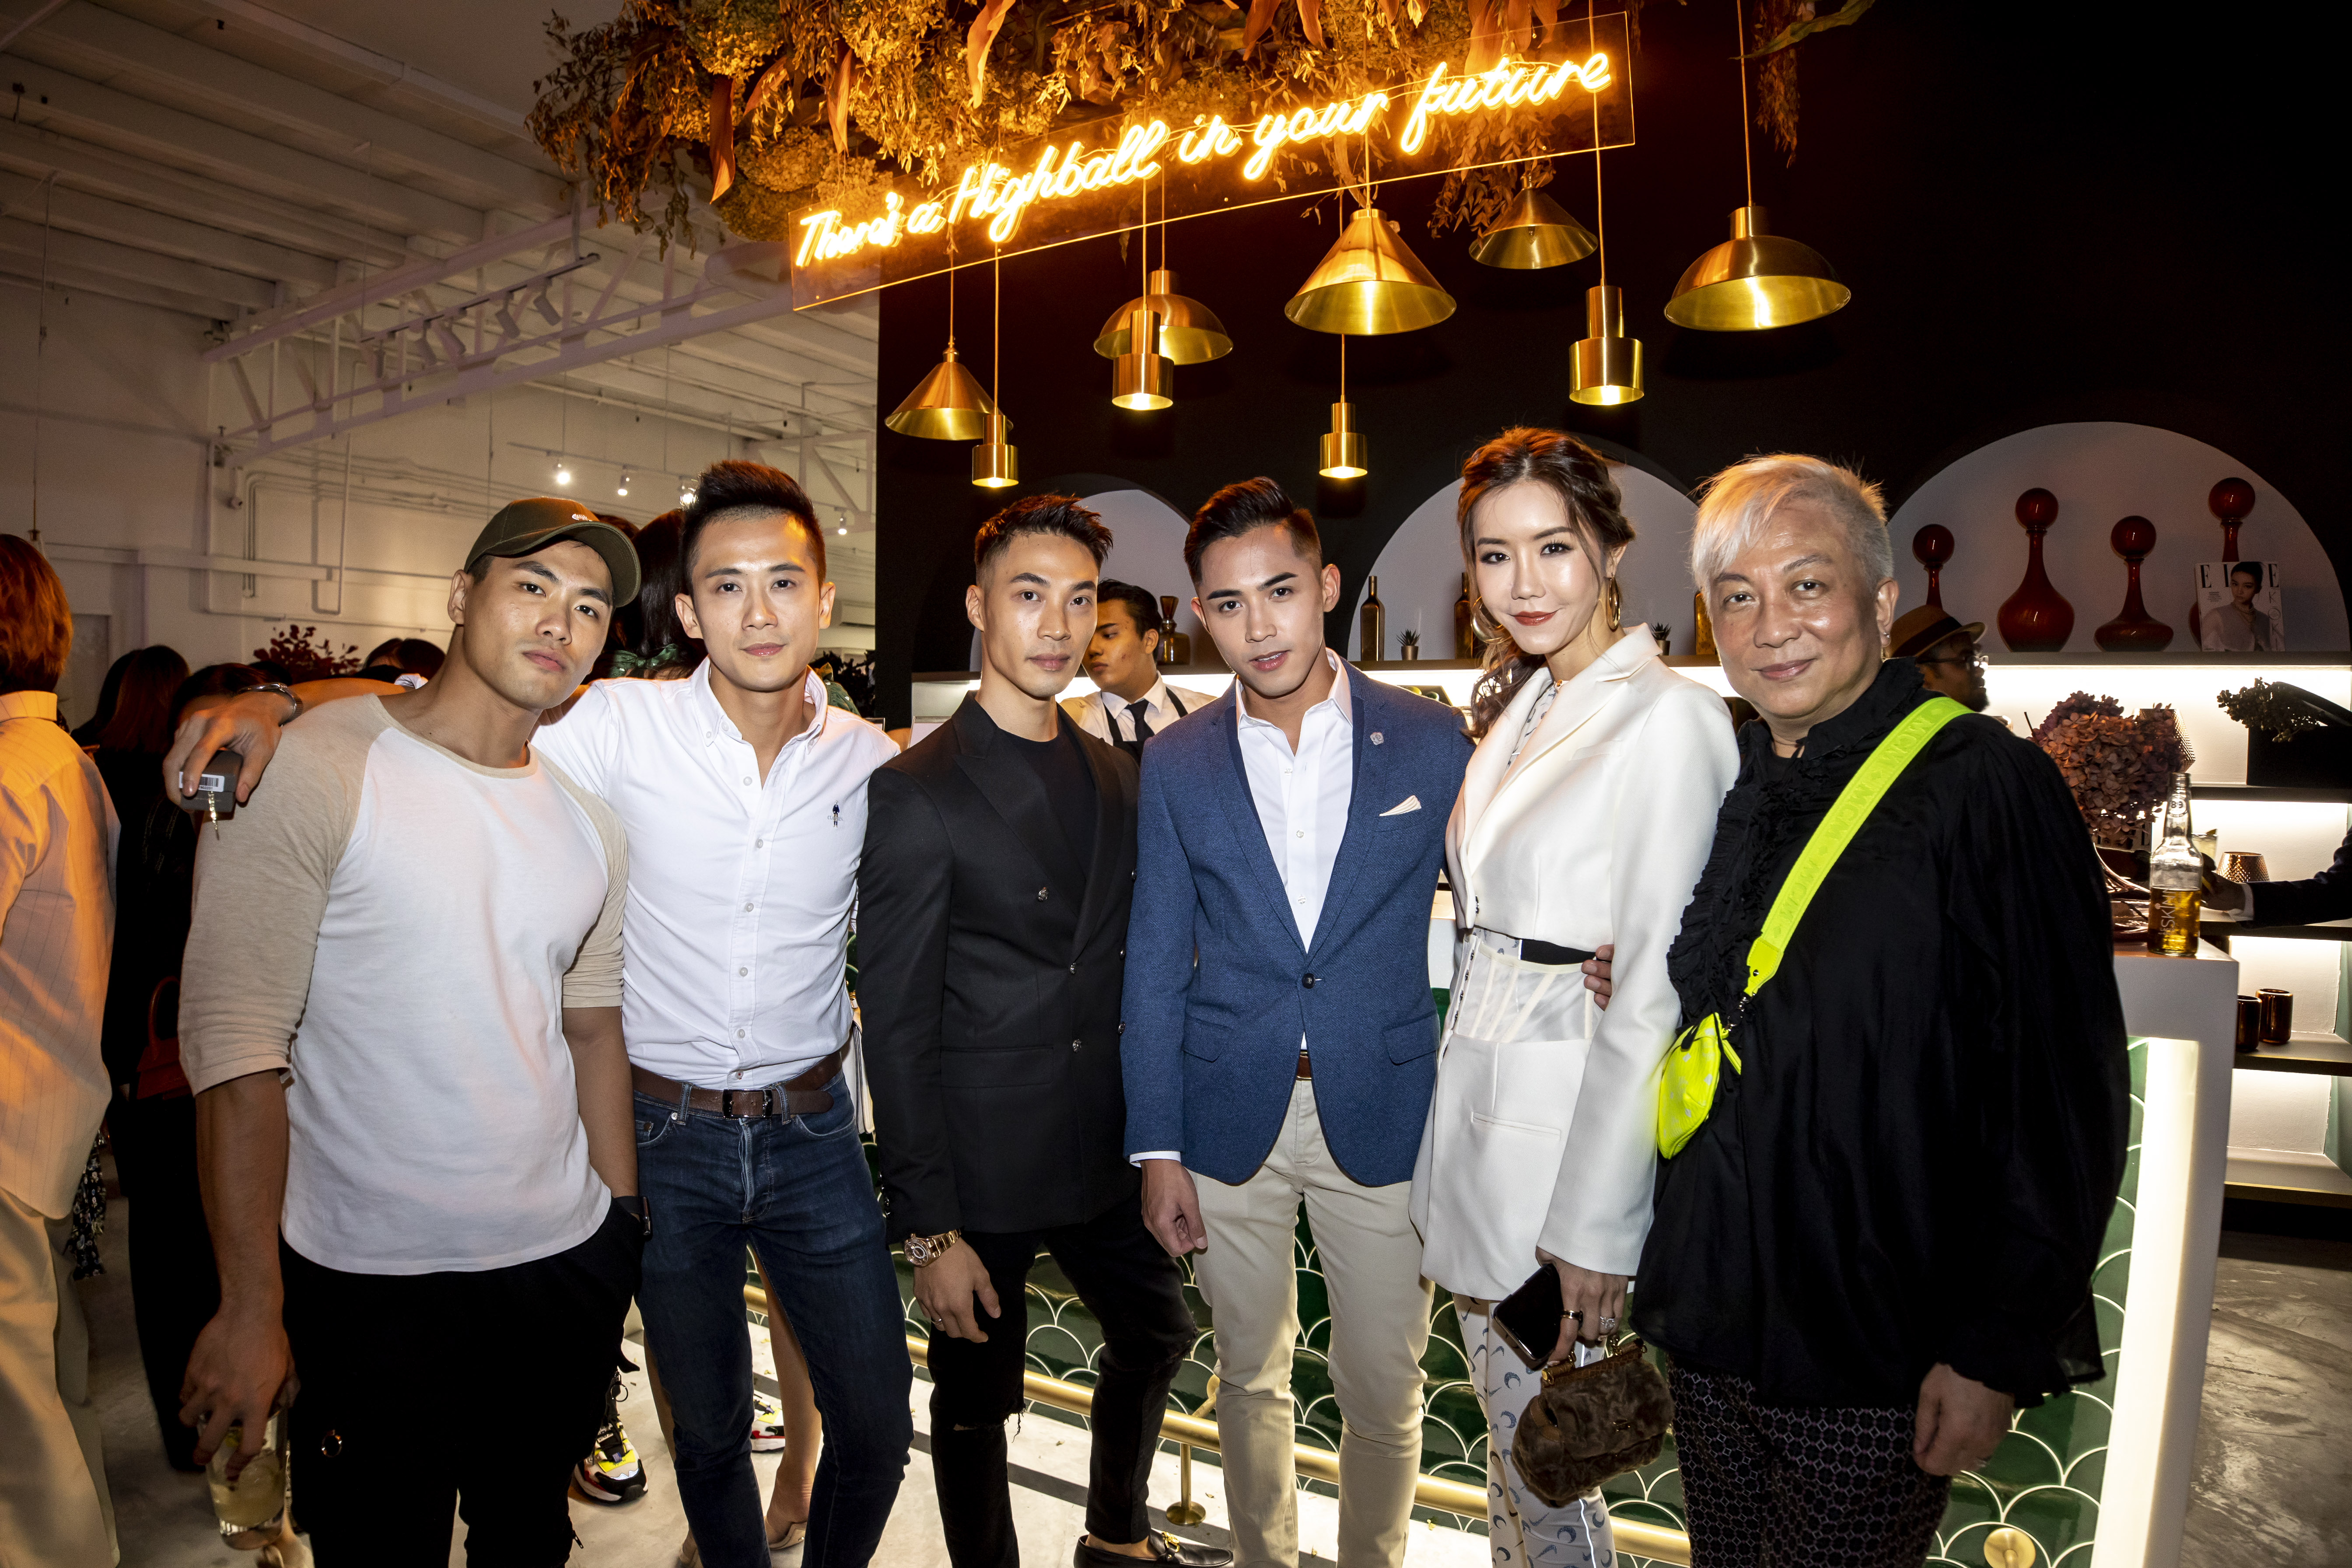 Nic Su, Nick Teo, Jordan Kwan, Danil Palma, Carol Loo and Addie Low